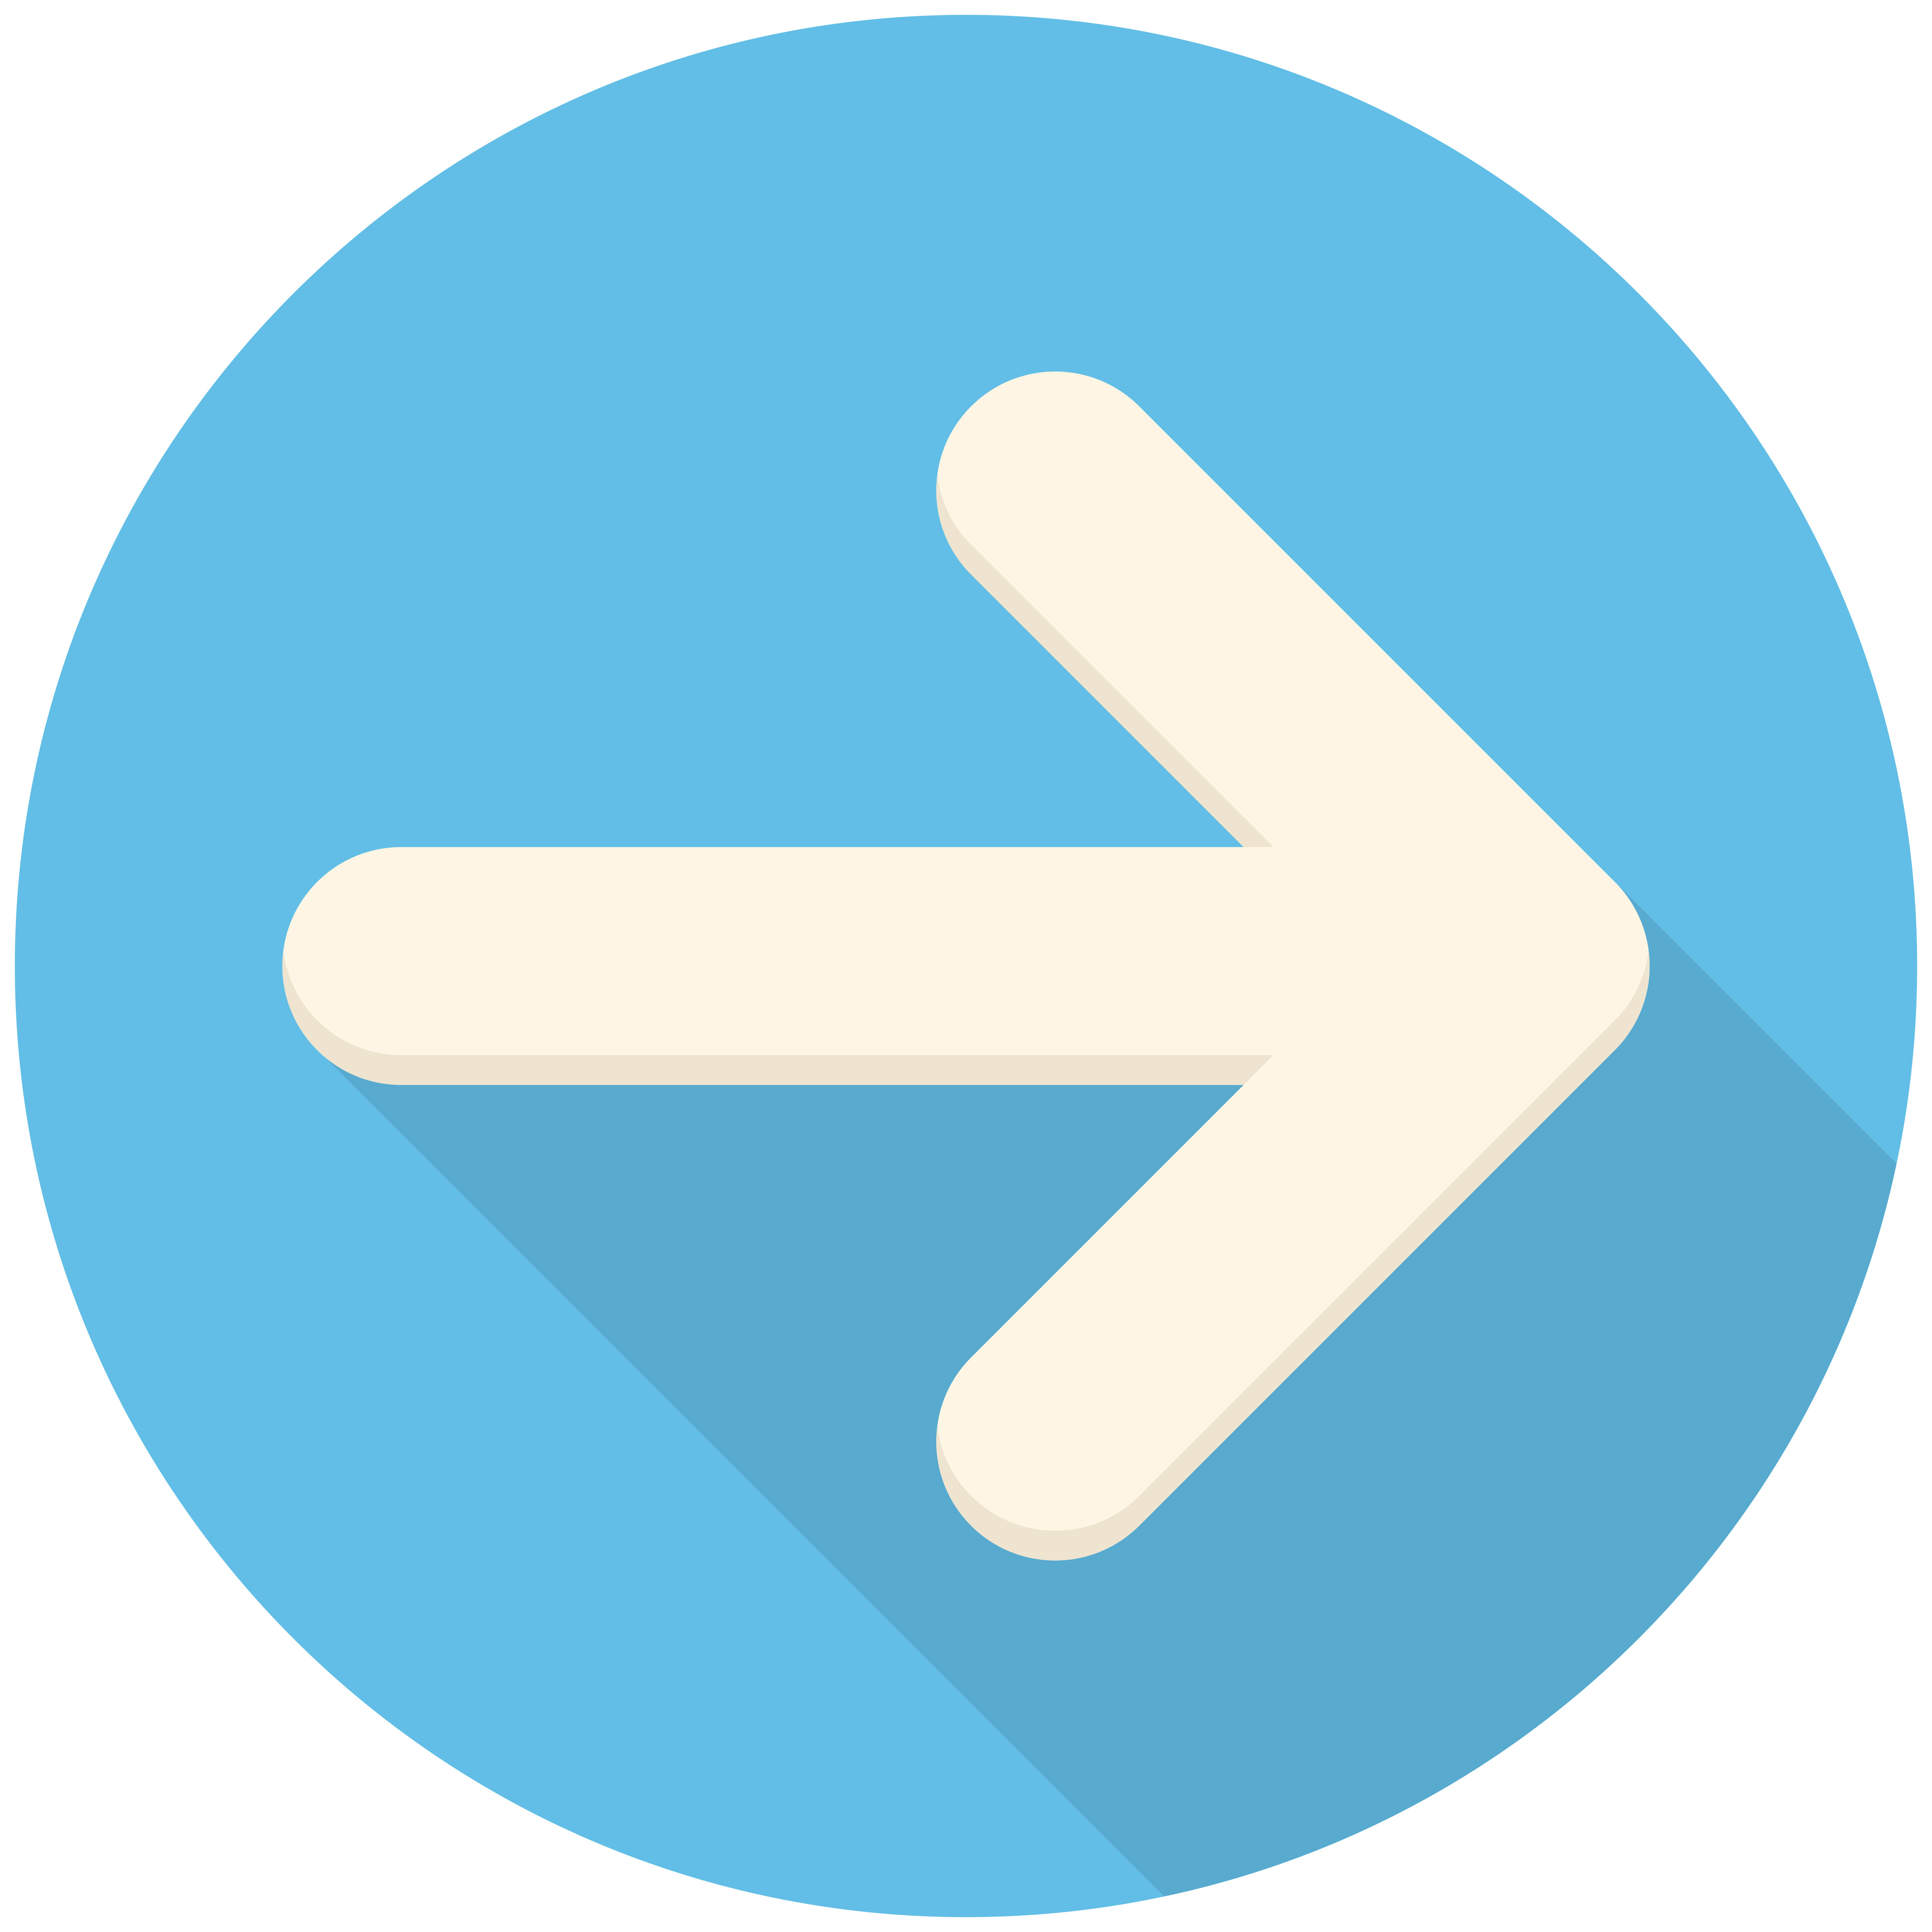 Forward bold arrow icon - Dave's Offers $500 College Scholarship